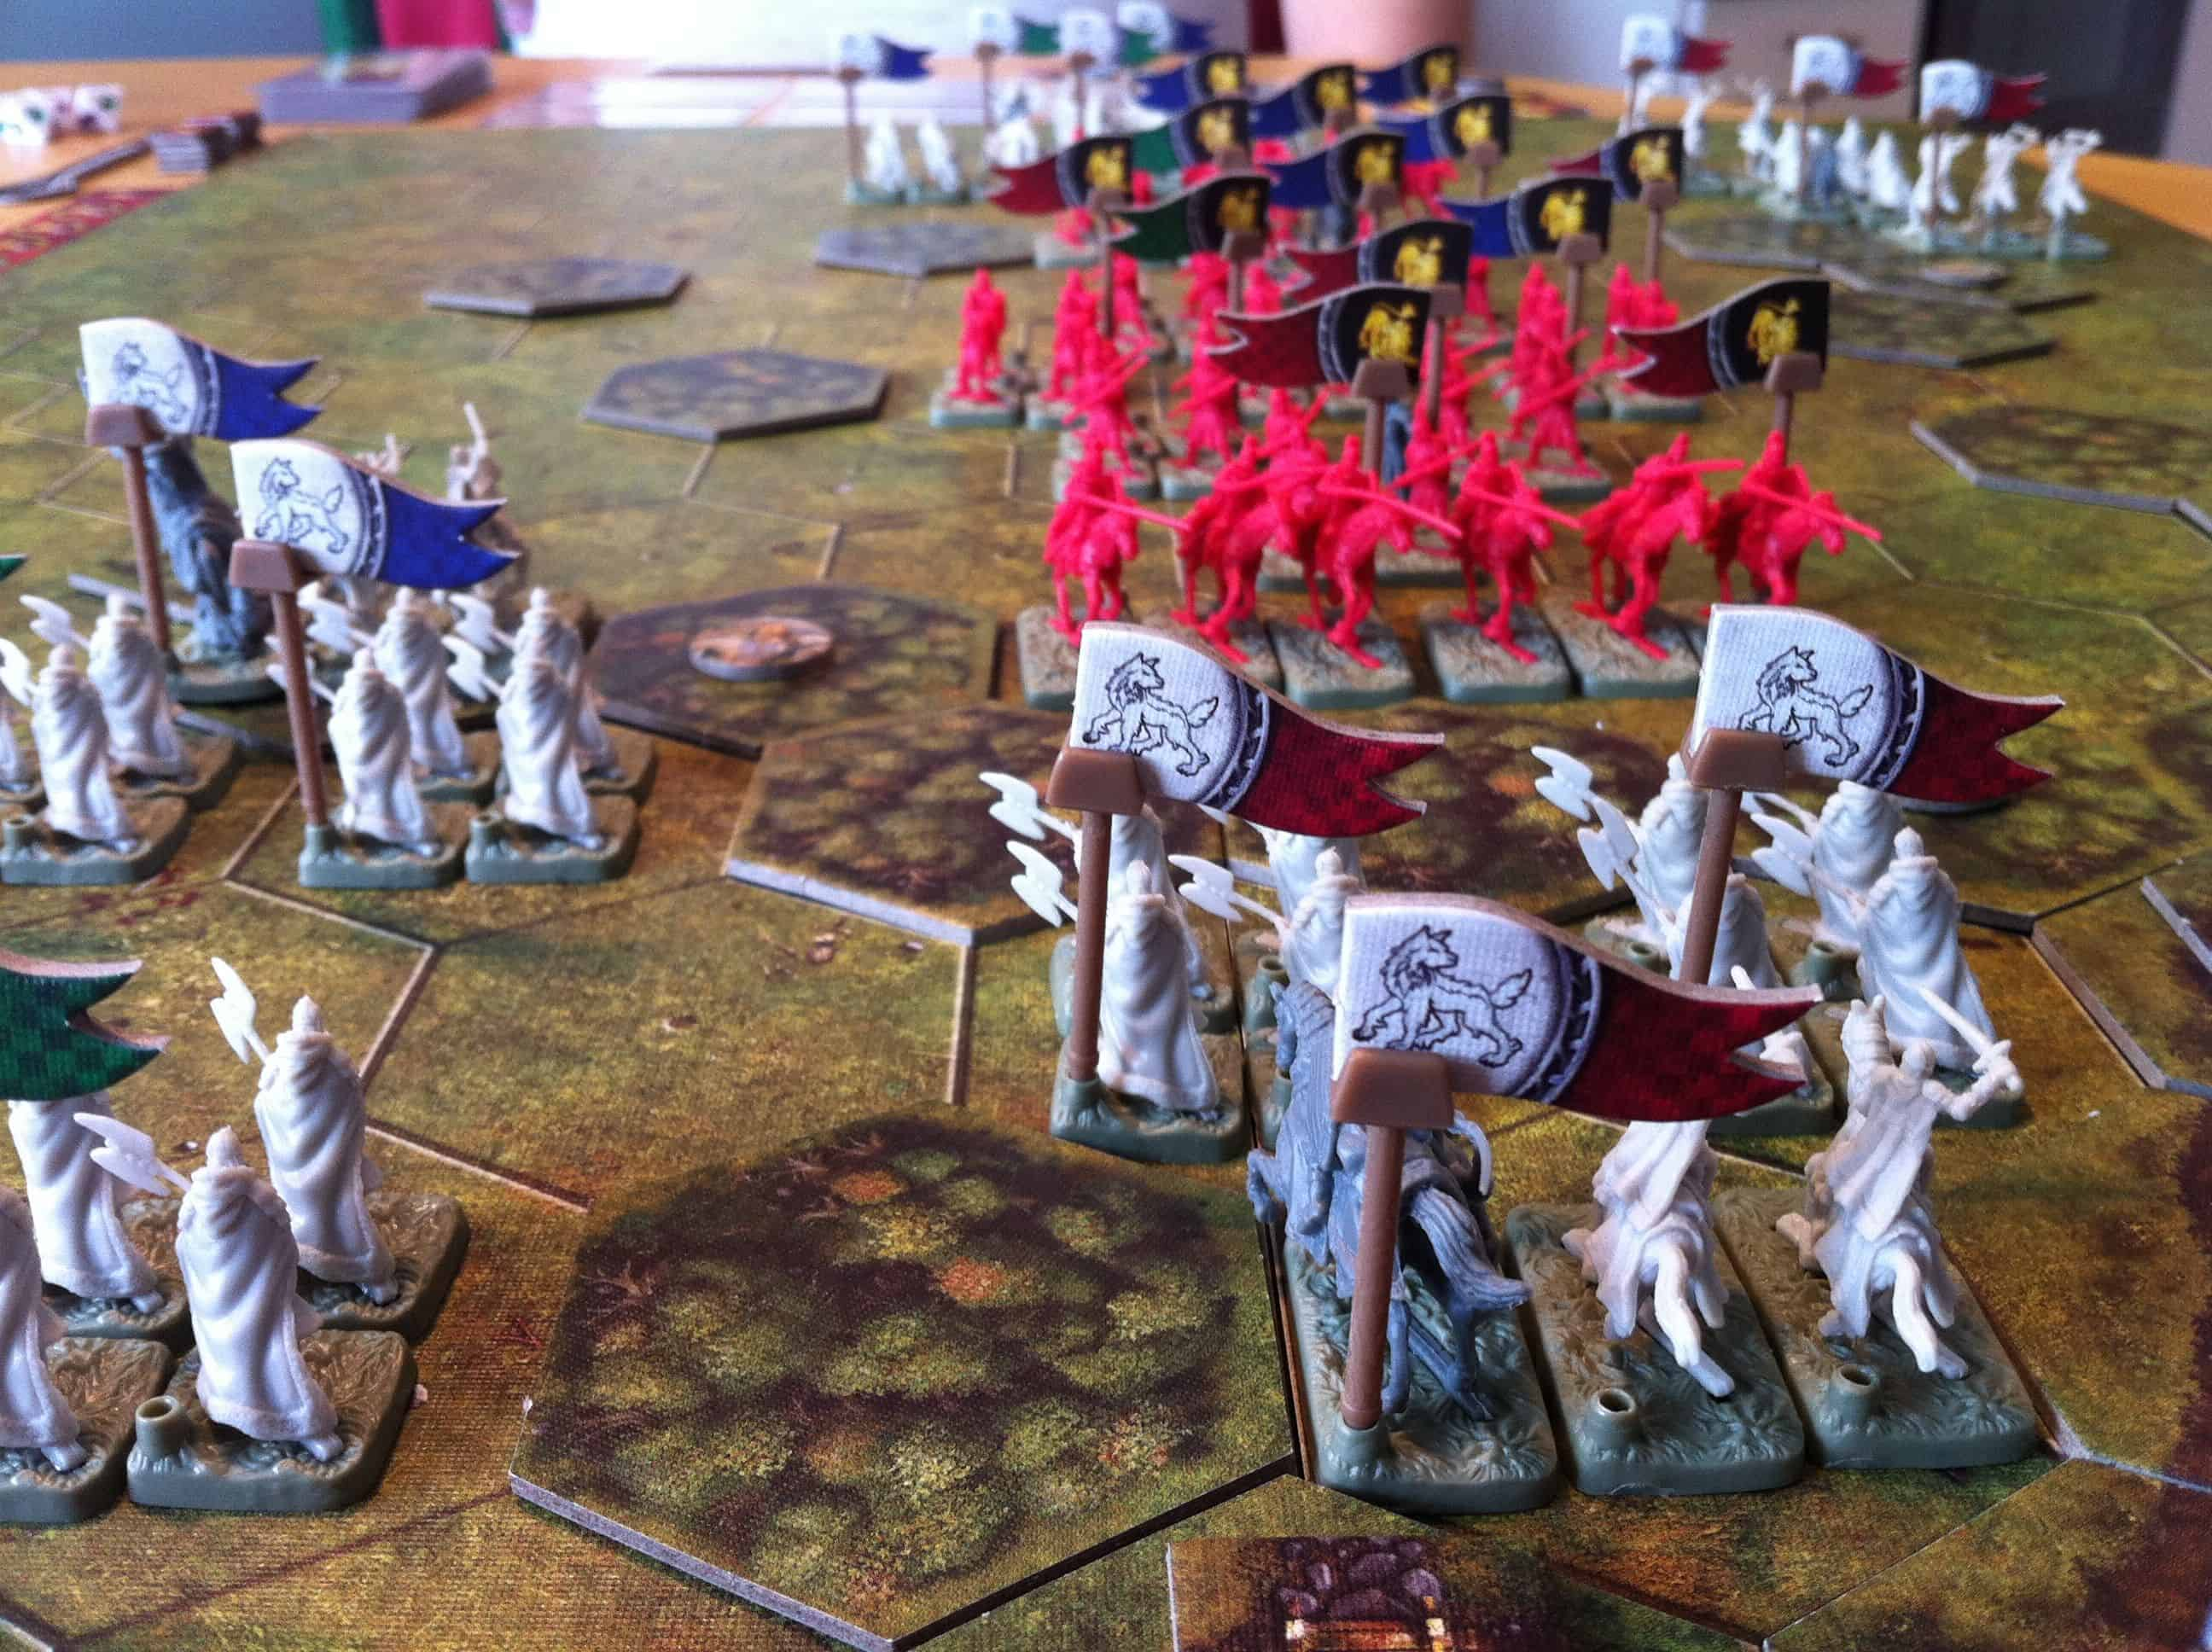 Battles of Westeros wargame